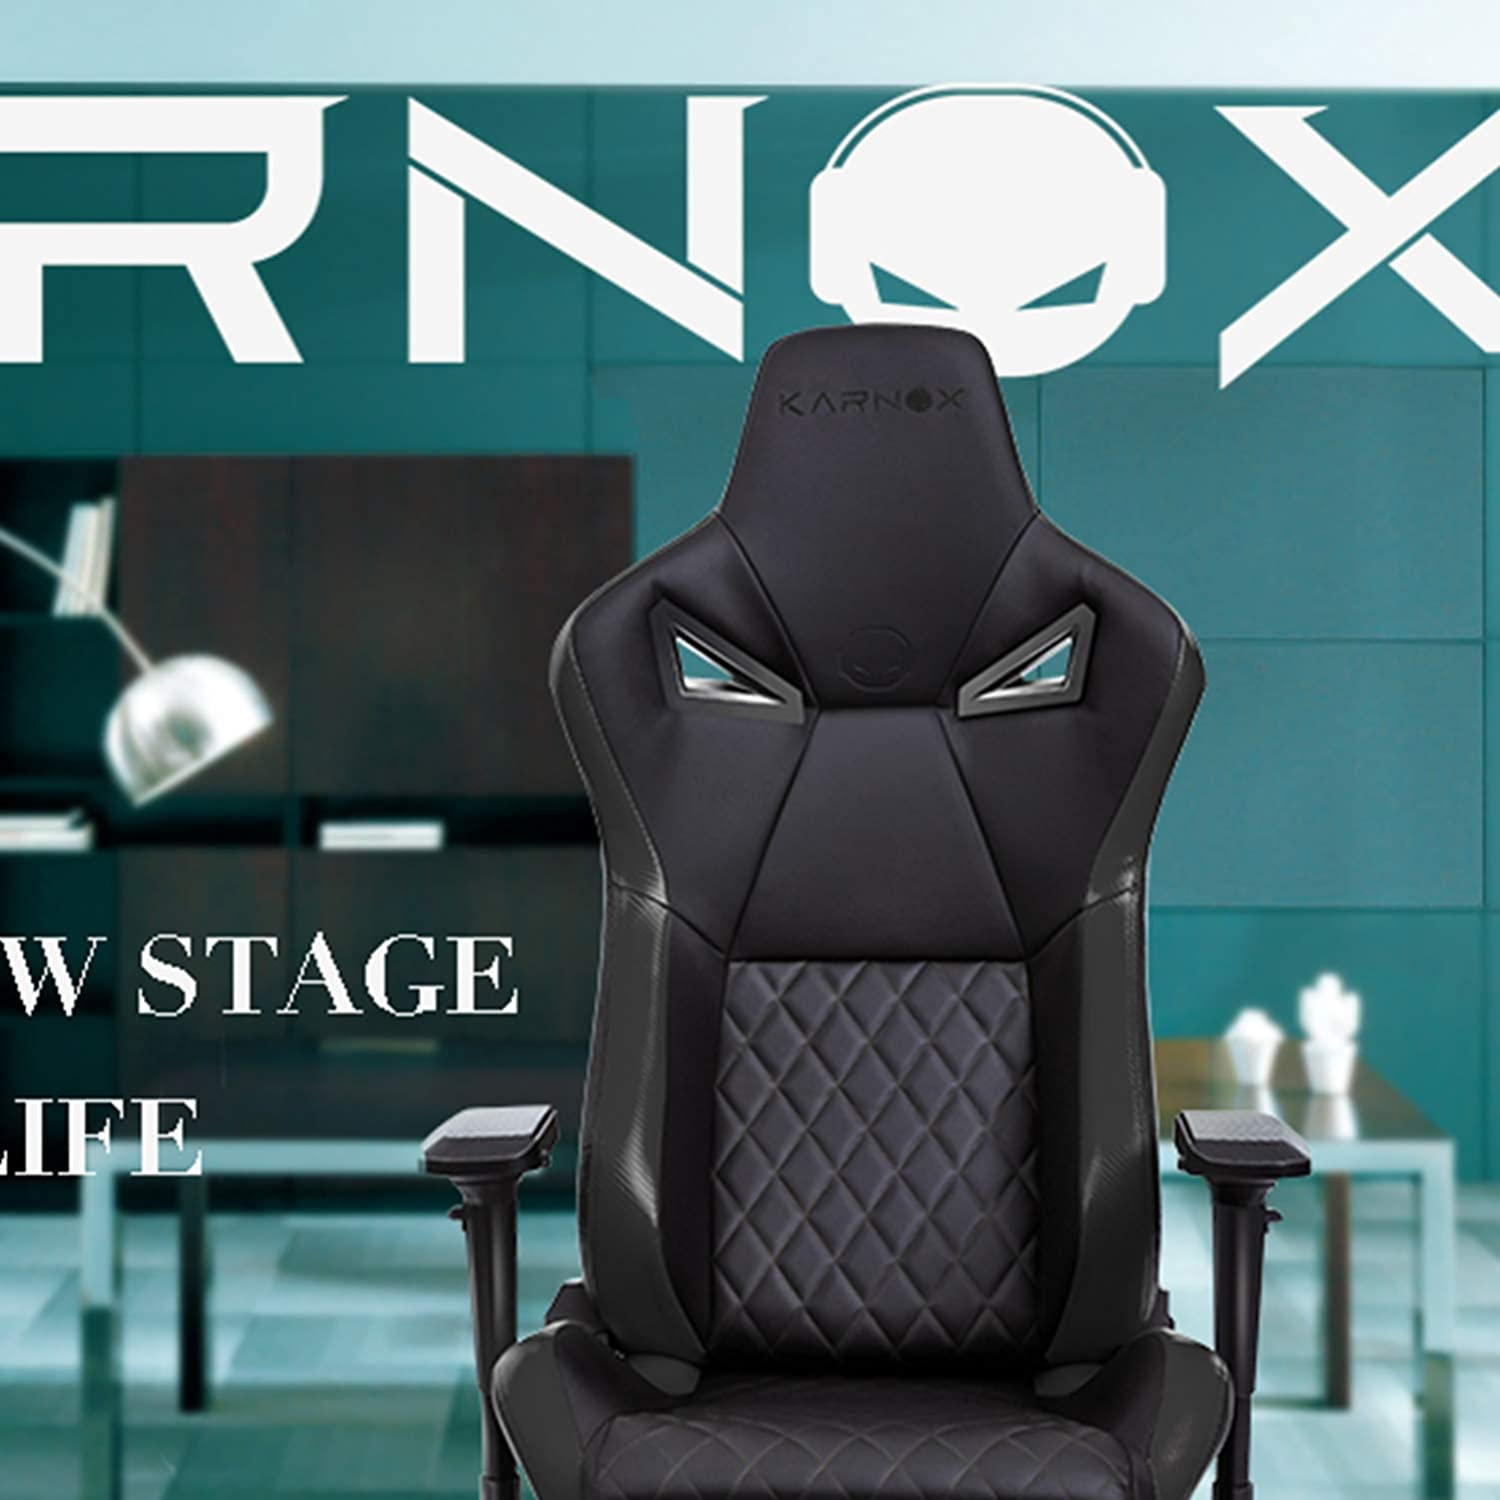 Groovy Karnox Legend Tr New Racing Style Gaming Office Chair With Adjustable Height And Armrests Ergonomic 1550 Reclining Locking High Back With Integrated Gmtry Best Dining Table And Chair Ideas Images Gmtryco